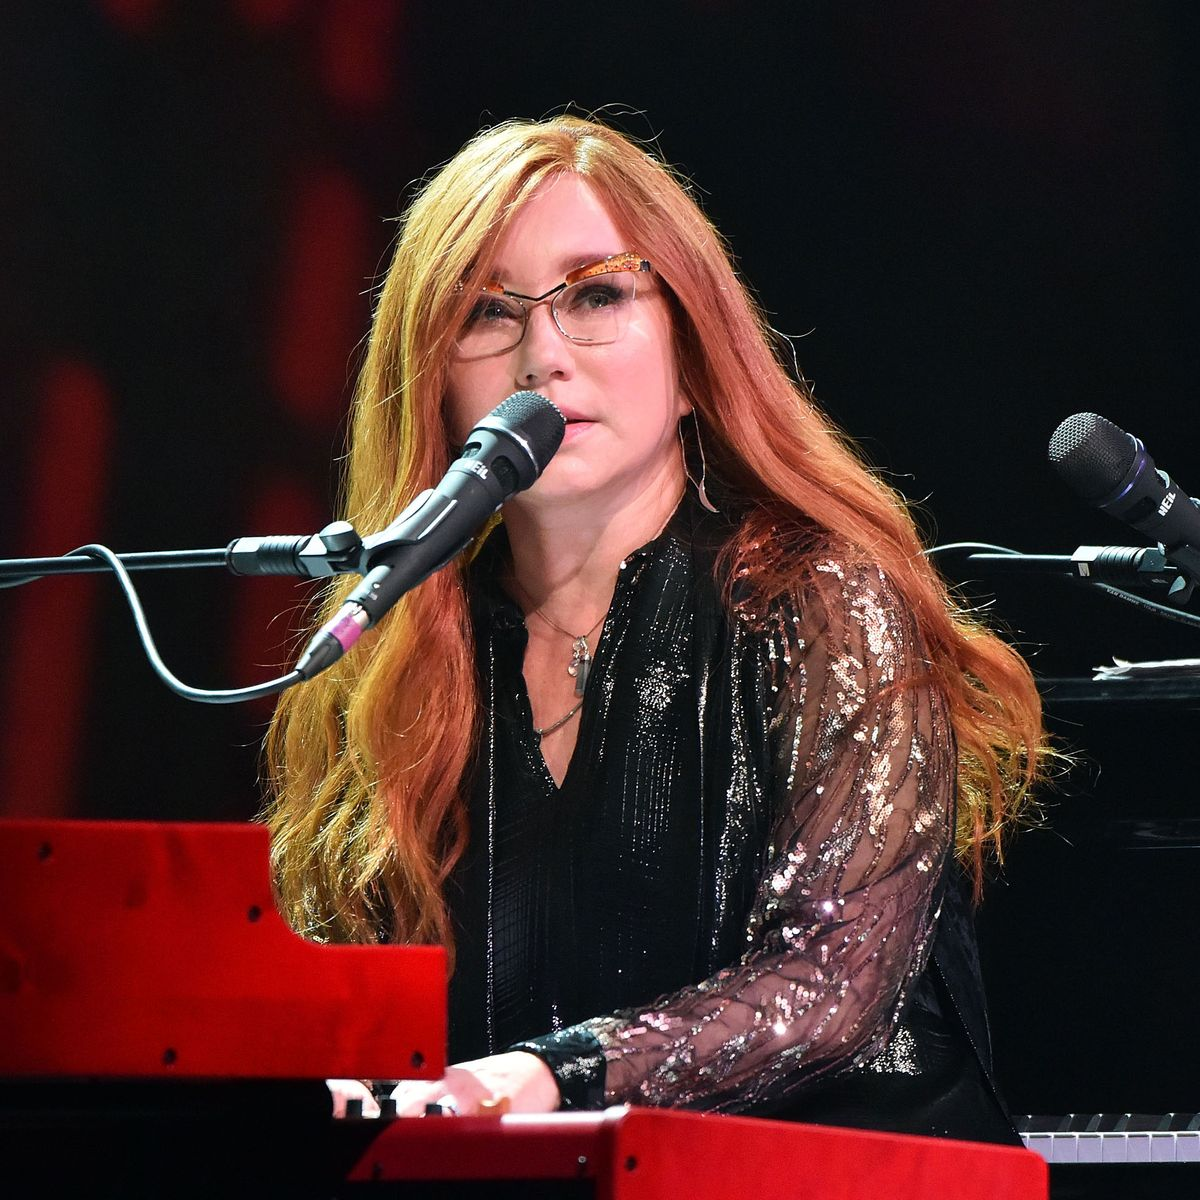 bc985e0dd2d9b6c5285c46a38de7e4791f 05 tori amos.rsquare.w1200 20 Things You Might Not Have Realised About Thelma & Louise